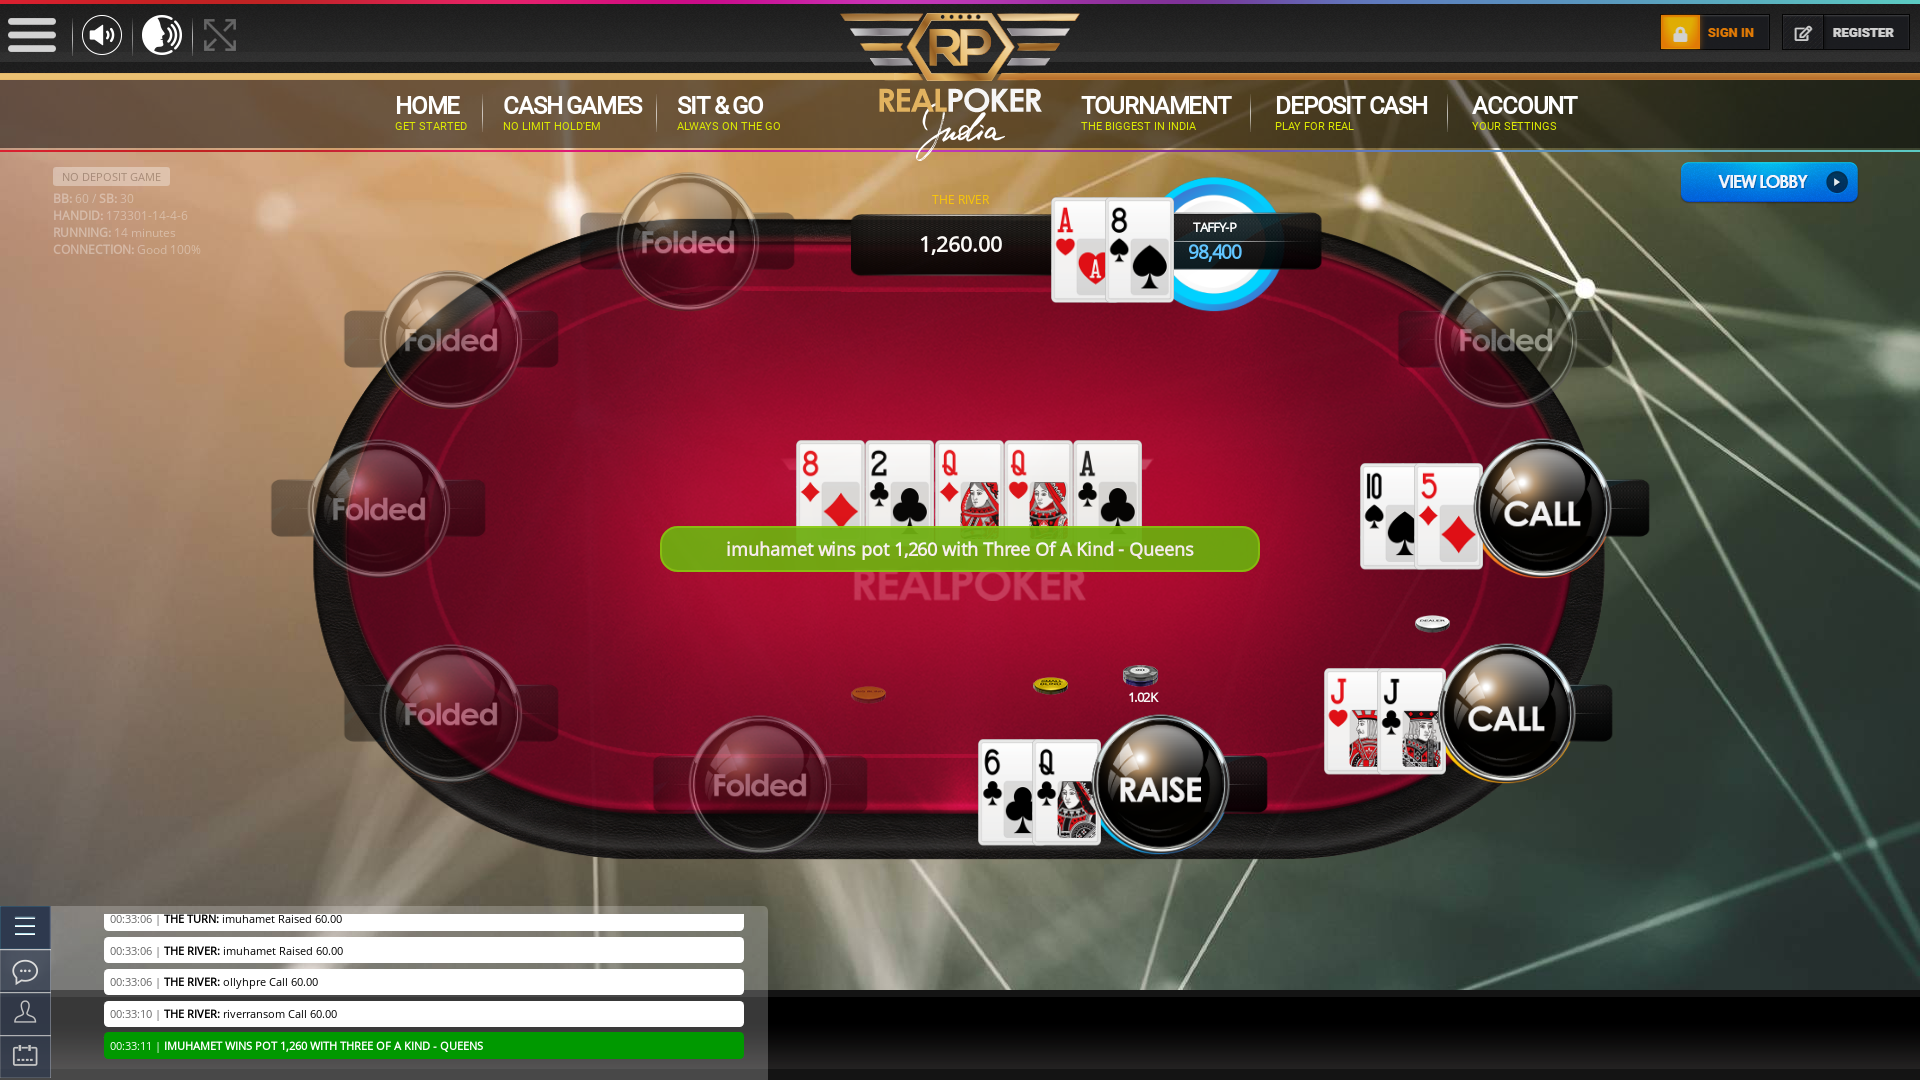 Indian poker on a 10 player table in the 14th minute